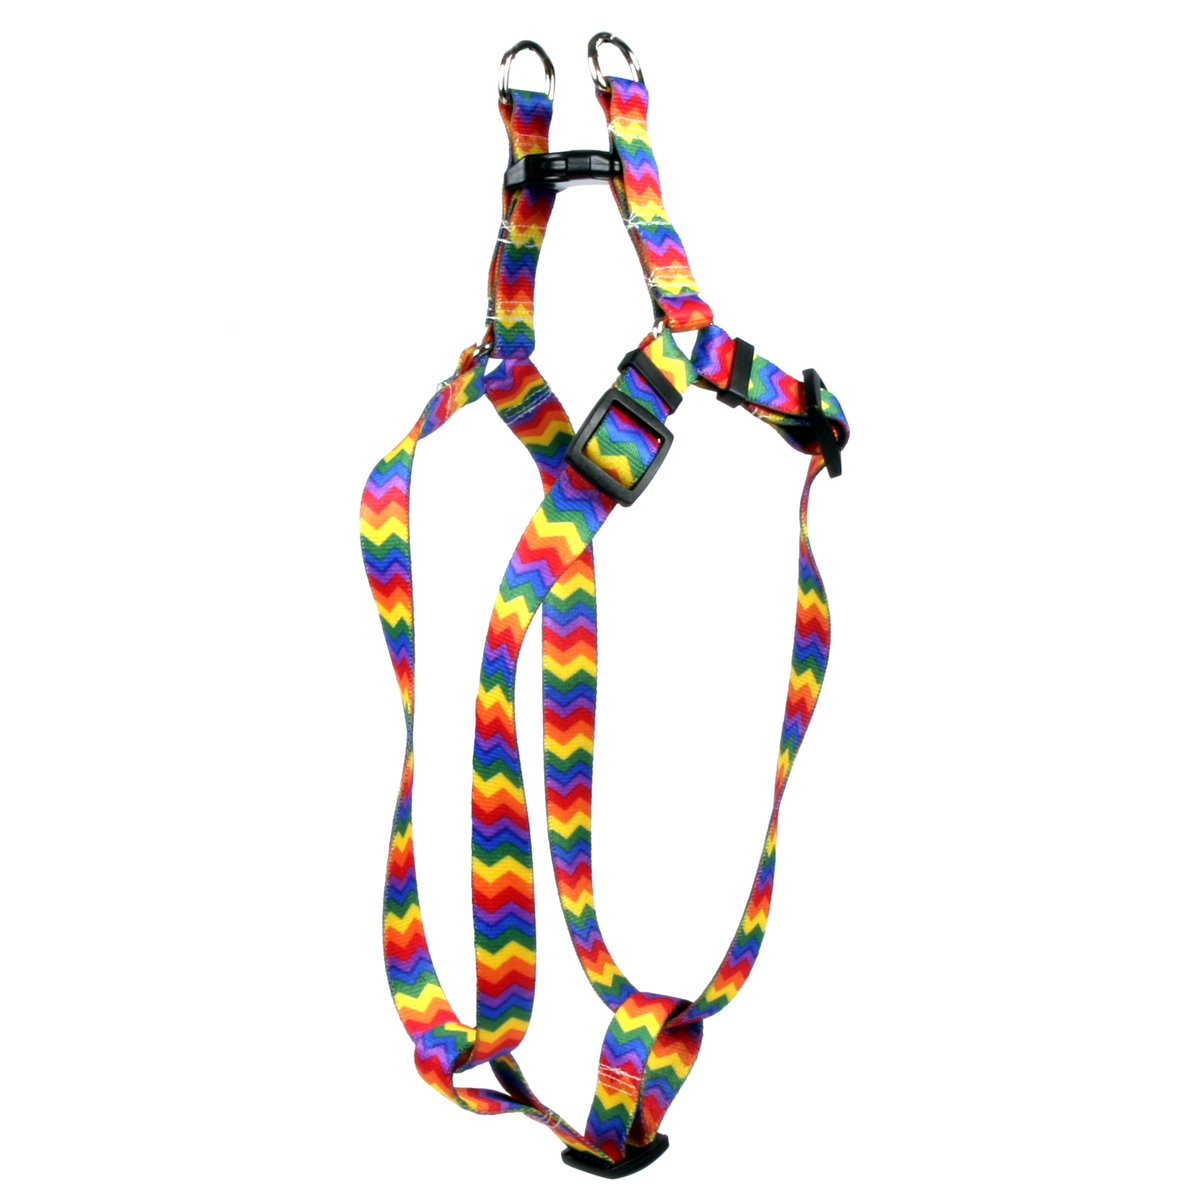 Yellow Dog Design Rainbow Chevron Step-in Dog Harness, X-Small-3/8 Wide and fits Chest of 4.5 to 9'' by Yellow Dog Design